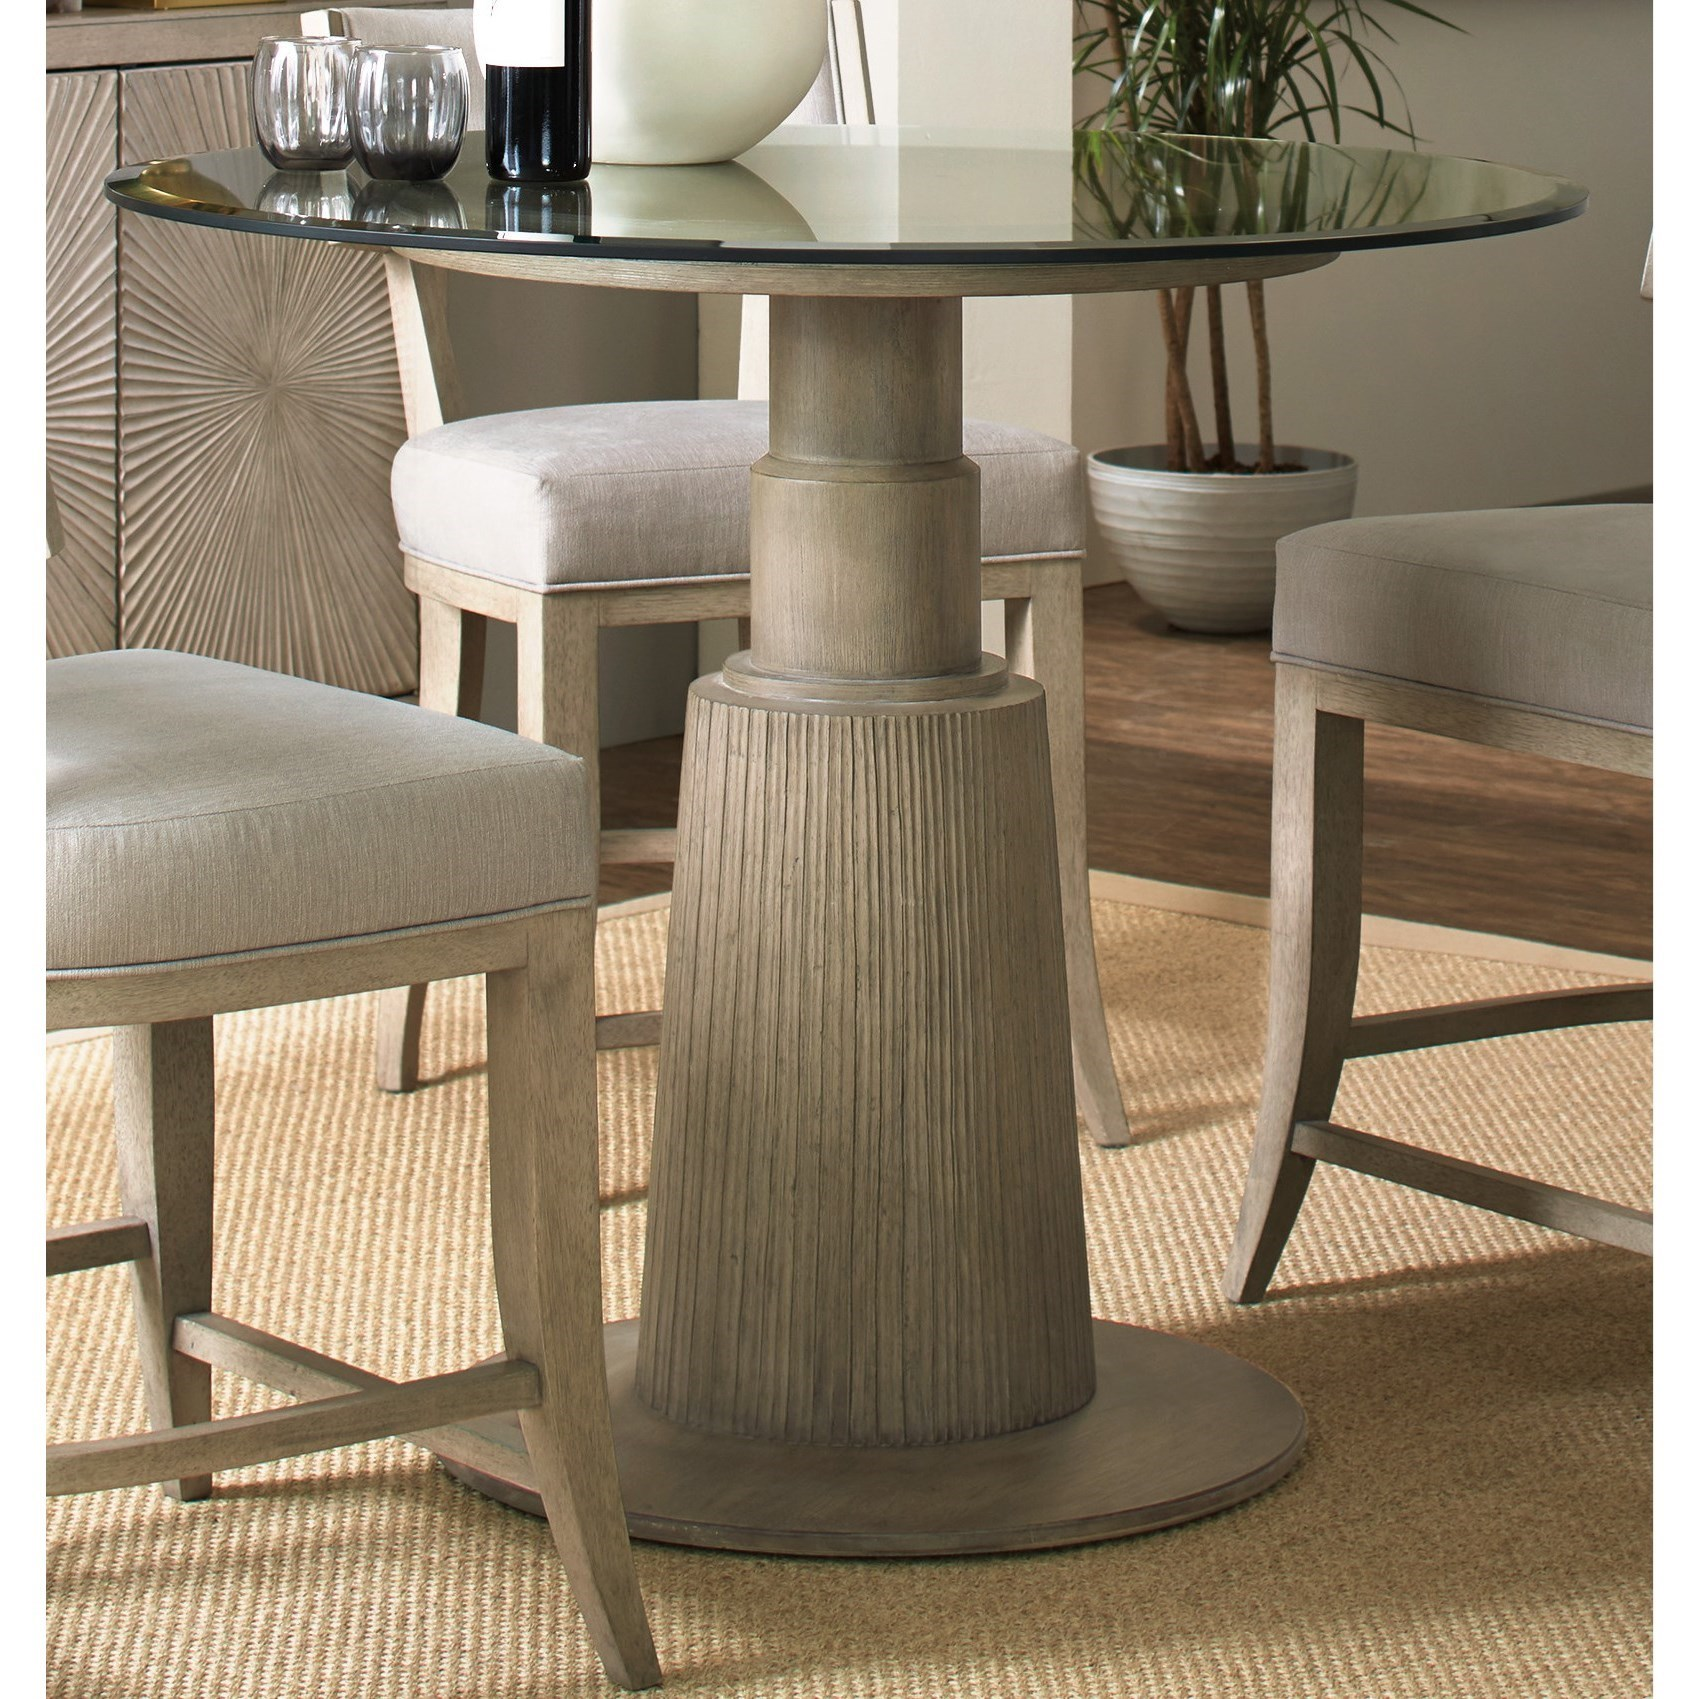 Hooker Furniture ElixirAdjustable Height Round Dining Table ...